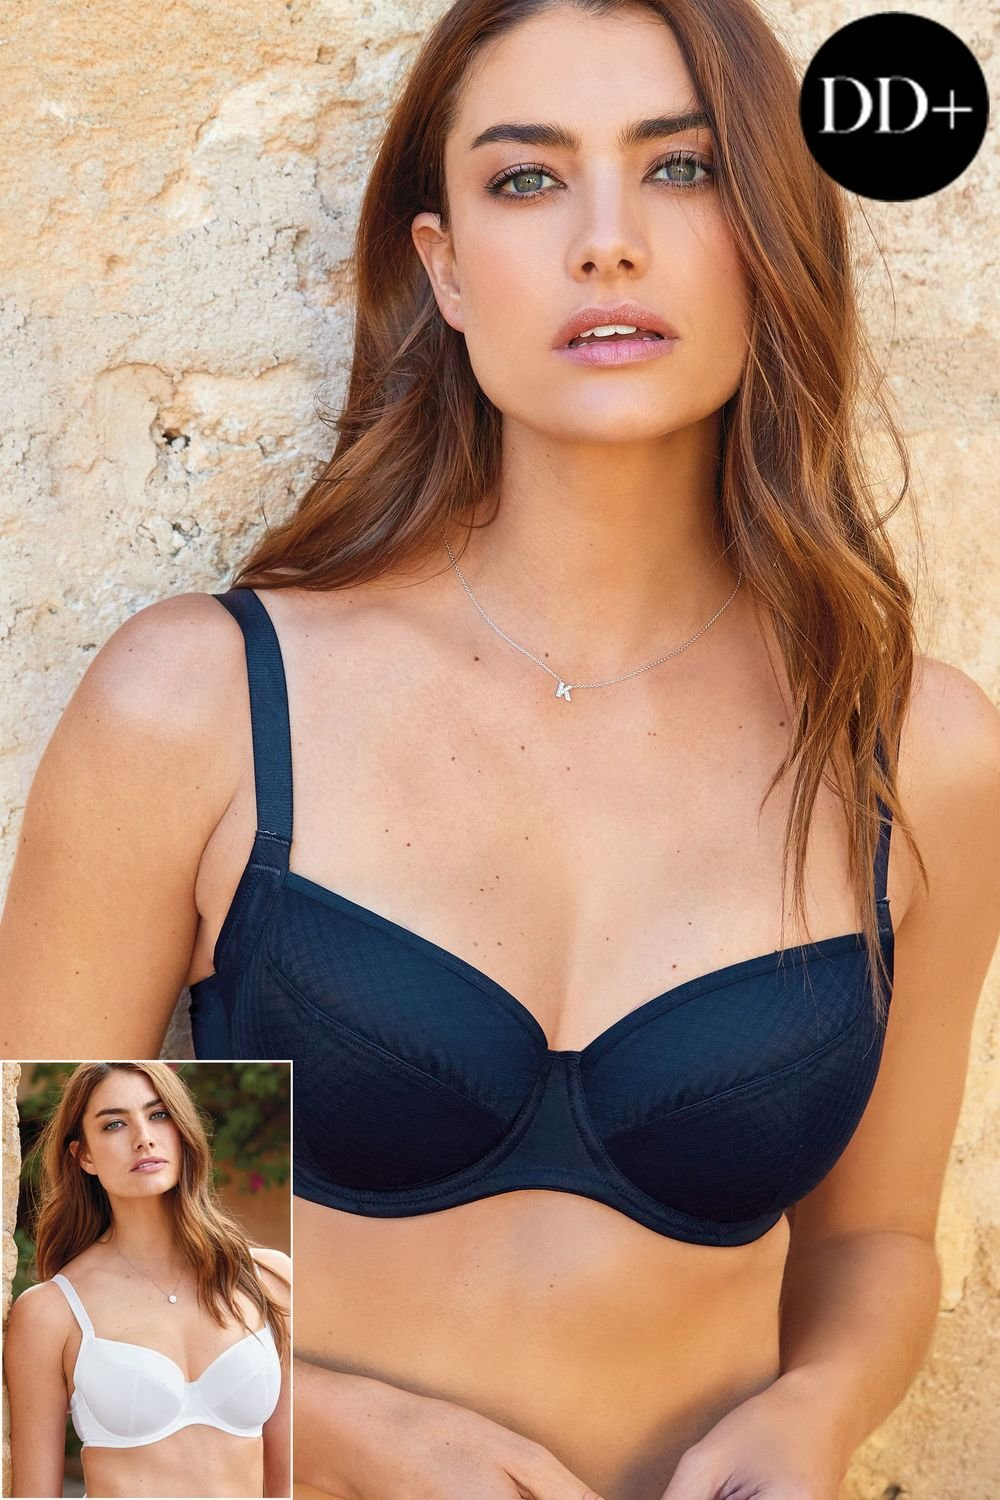 7576169ba8 Next Georgie DD Plus Non Pad Full Cup Bras Two Pack Online